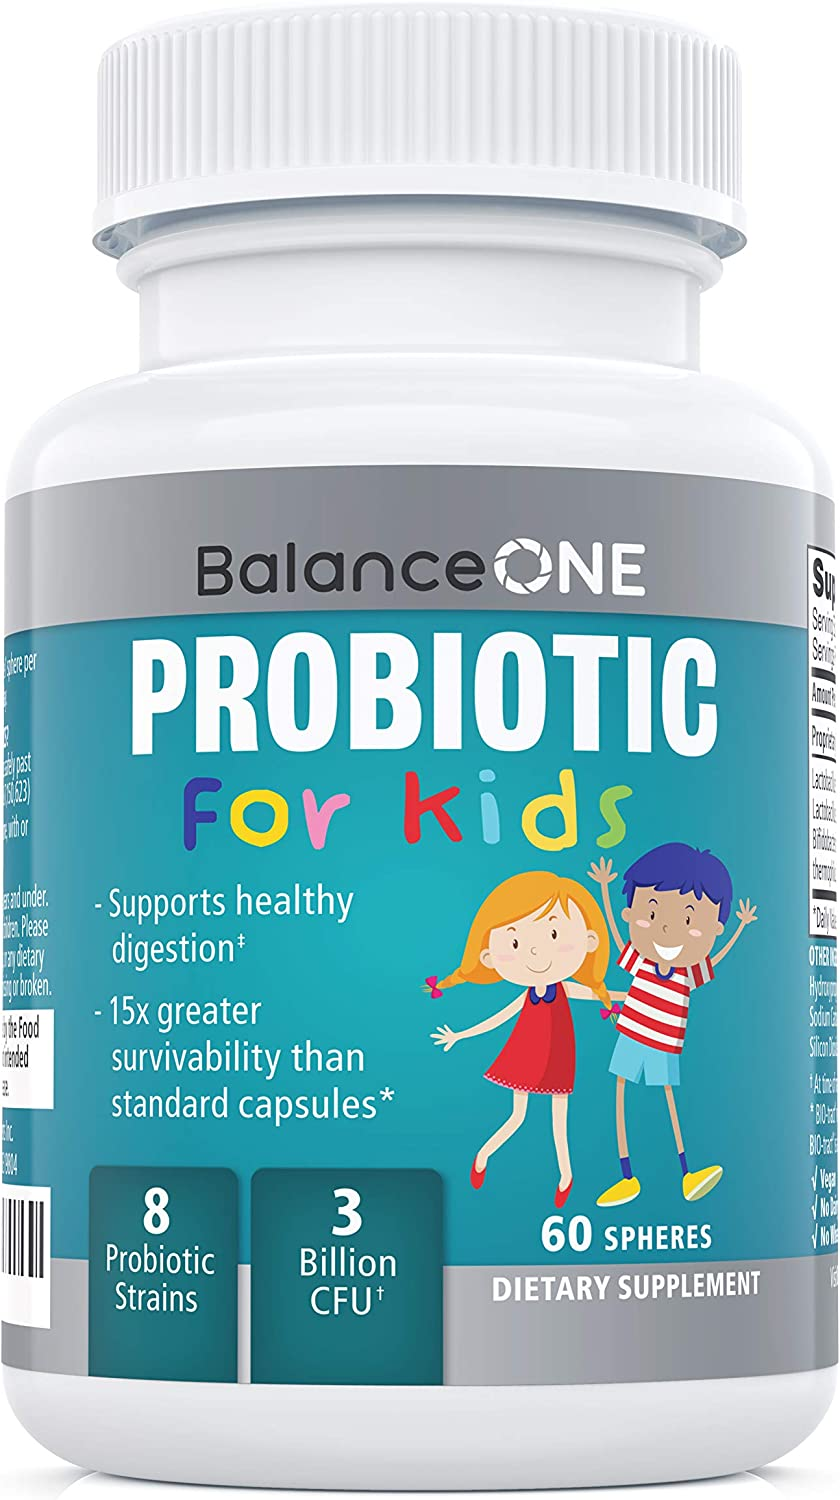 Balance ONE Kids Probiotic - for Children's Gut Health and Digestive Support - Time-Release, Shelf Stable, Sugar Free - Tiny, Easy-to-Swallow Pearls - 60 Day Supply